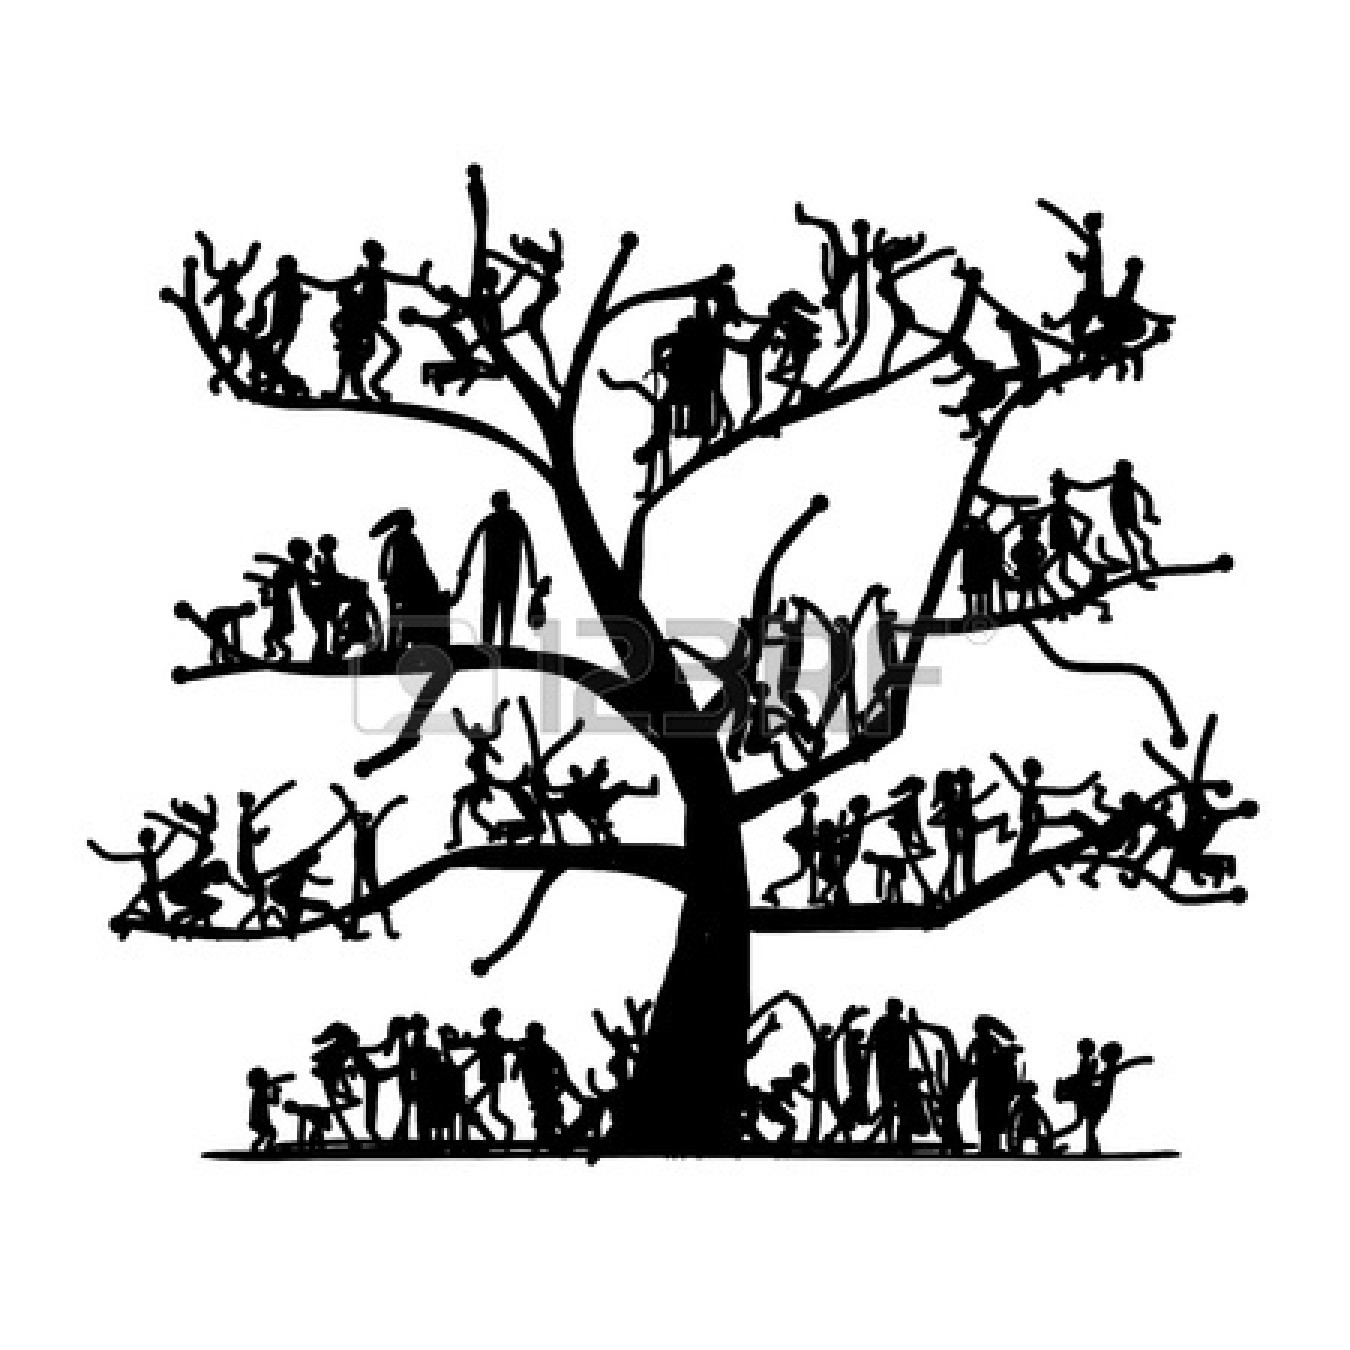 Family tree clipart black and white free